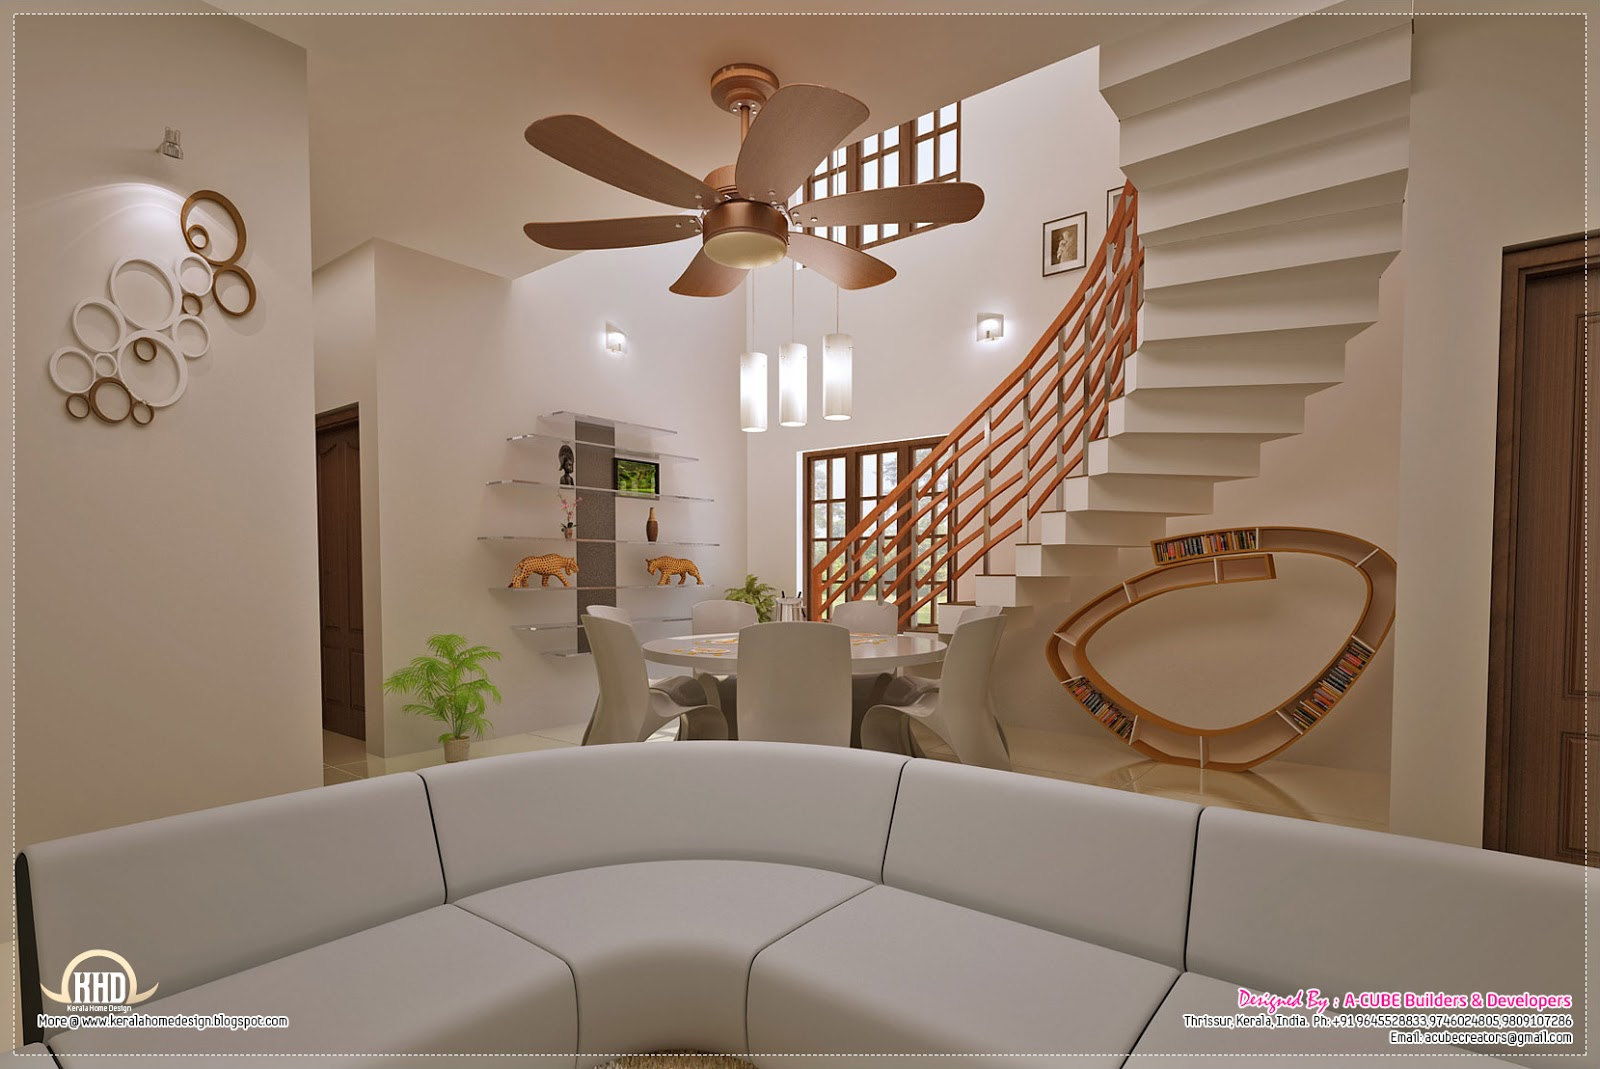 Awesome interior decoration ideas kerala home design and for Interior designs in house